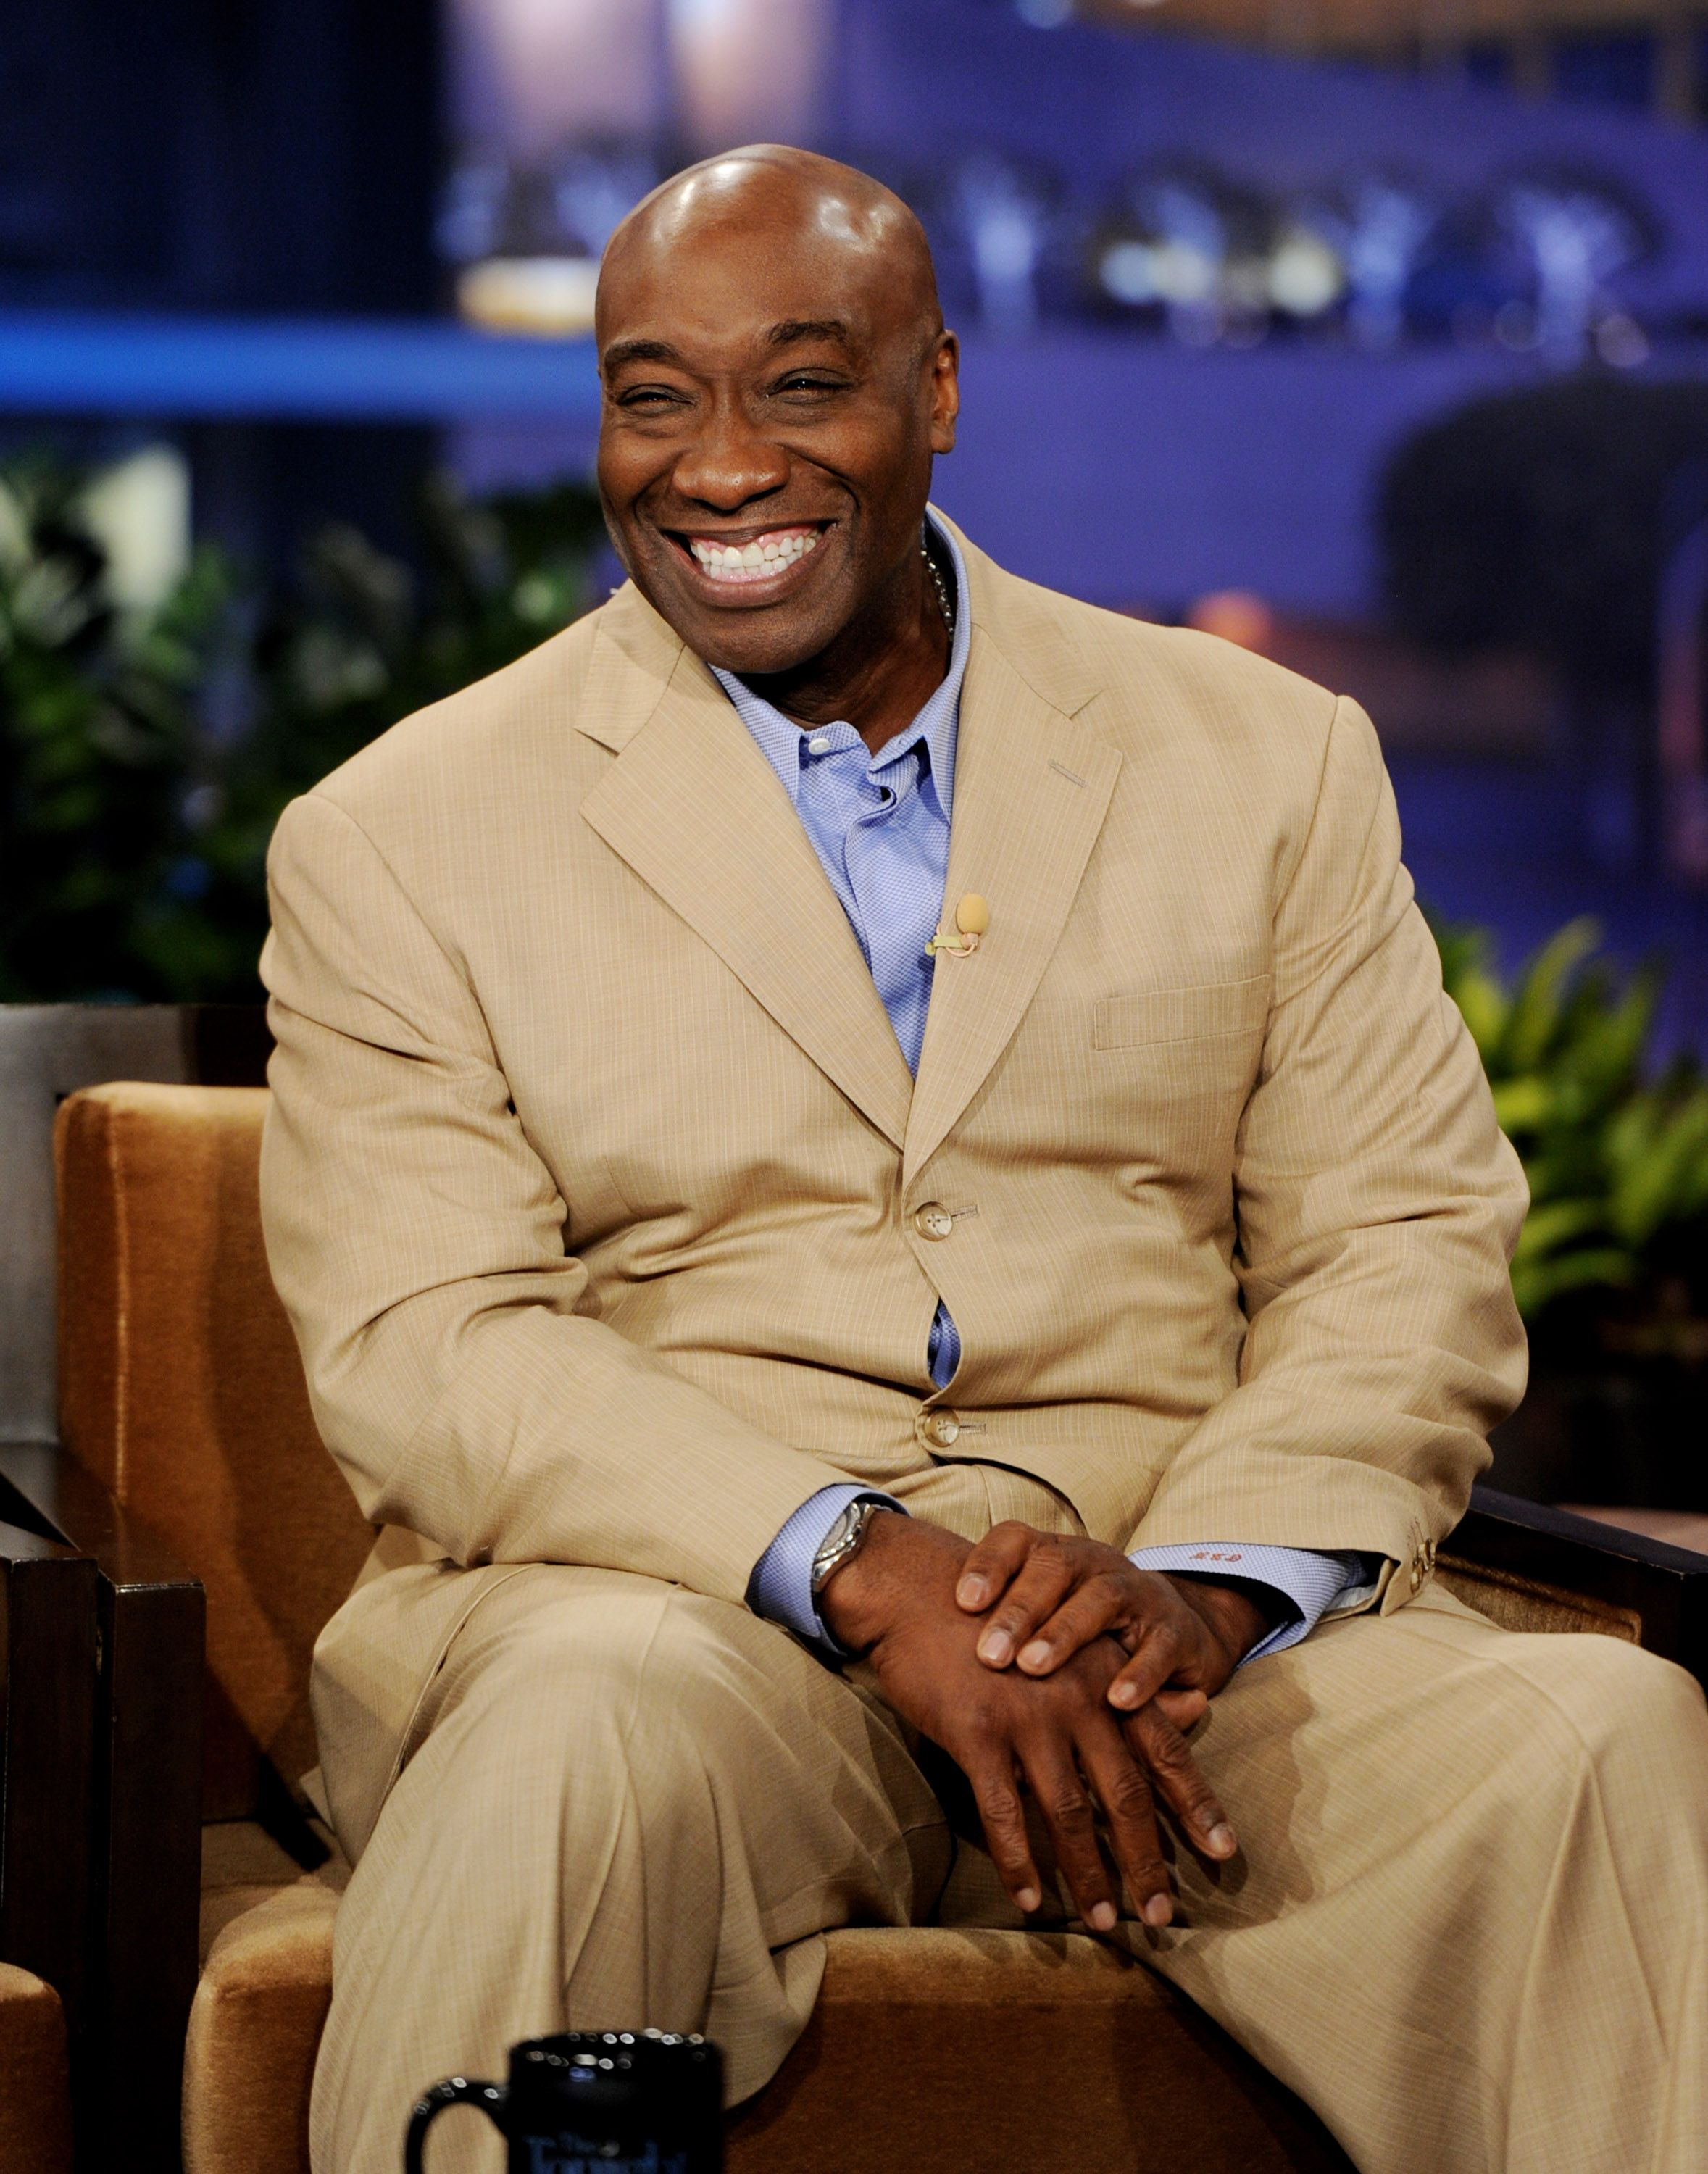 """Michael Clarke Duncan tritt am 20. Februar 2012 in """"The Tonight Show With Jay Leno"""" in den NBC Studios auf.   Quelle: Getty Images"""